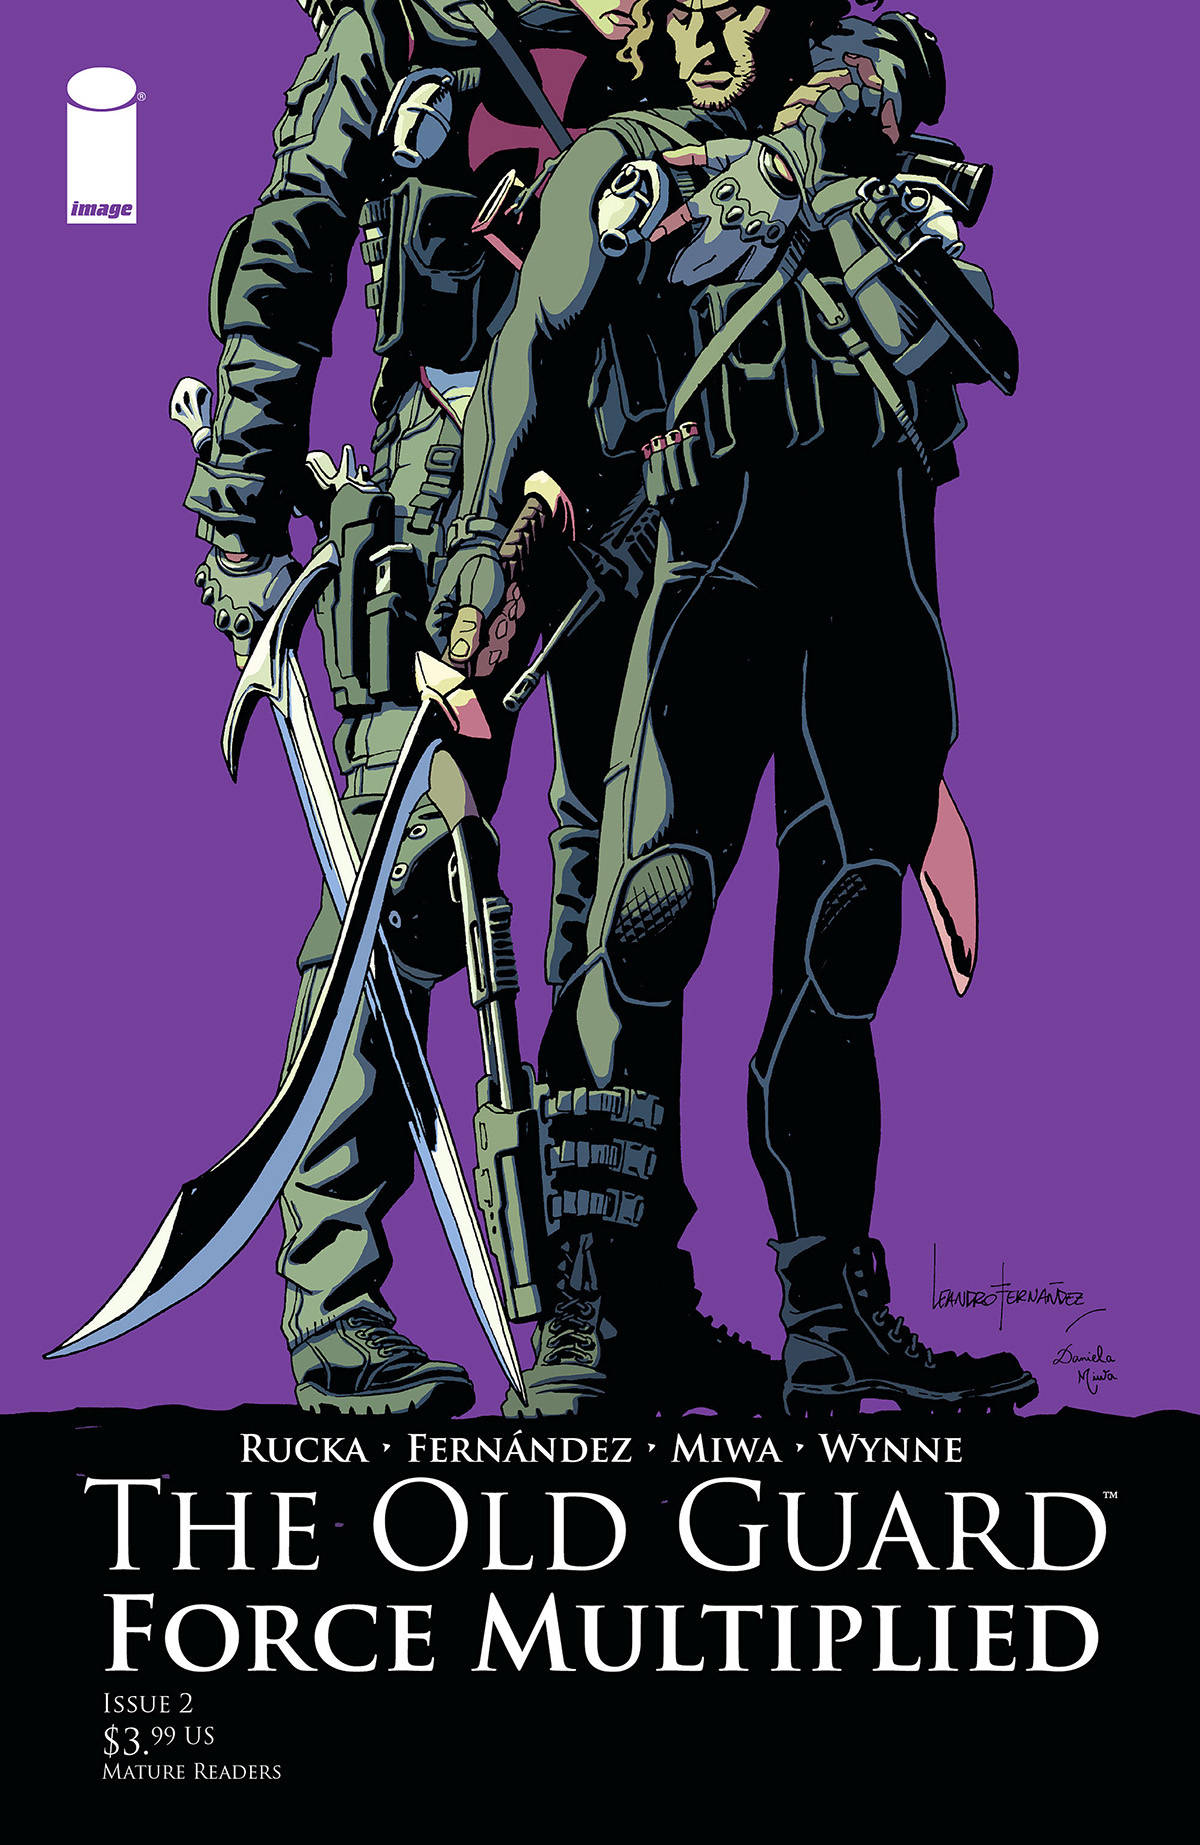 The Old Guard: Force Multiplied #2 (2020)